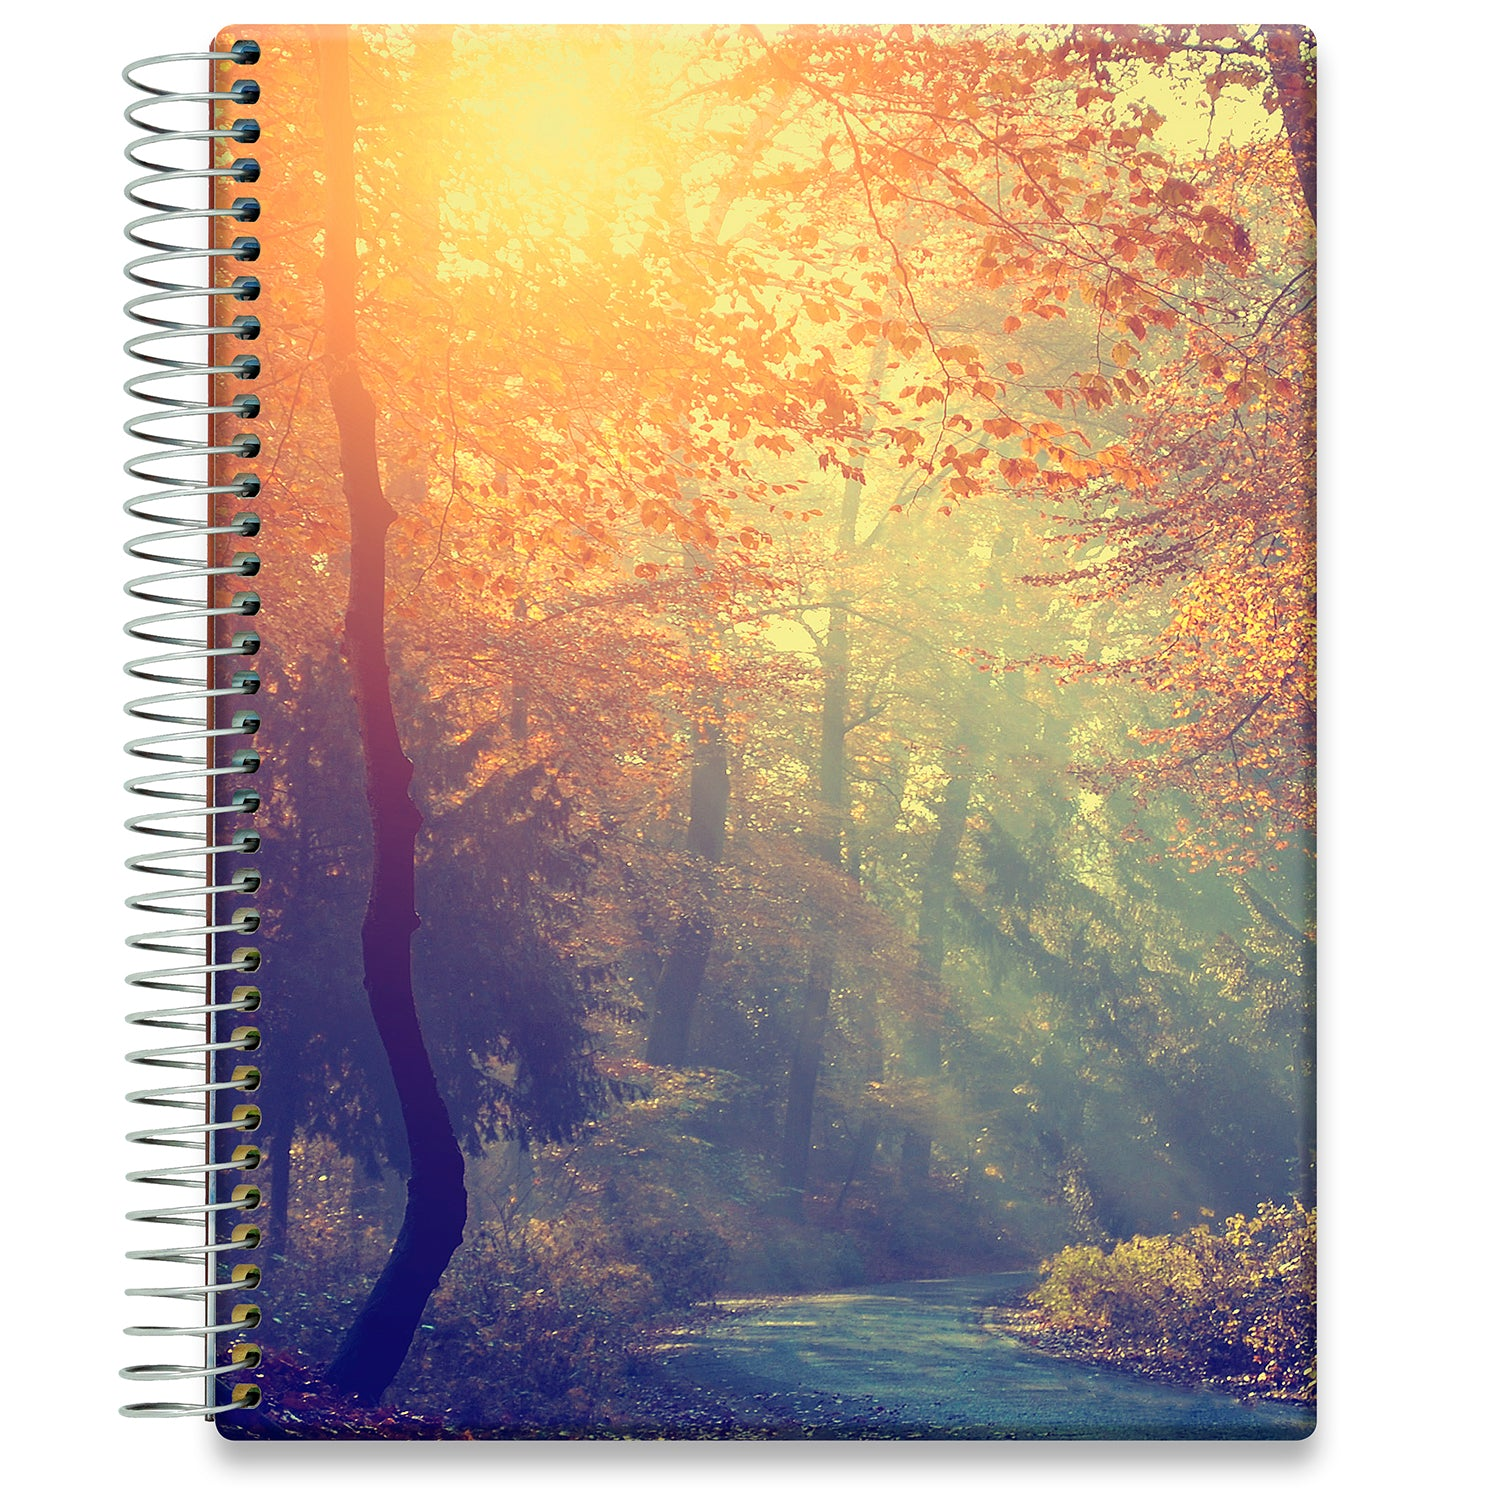 Planner 2021-2022 • April 2021 to June 2022 Academic Year • 8.5x11 Hardcover • Forest